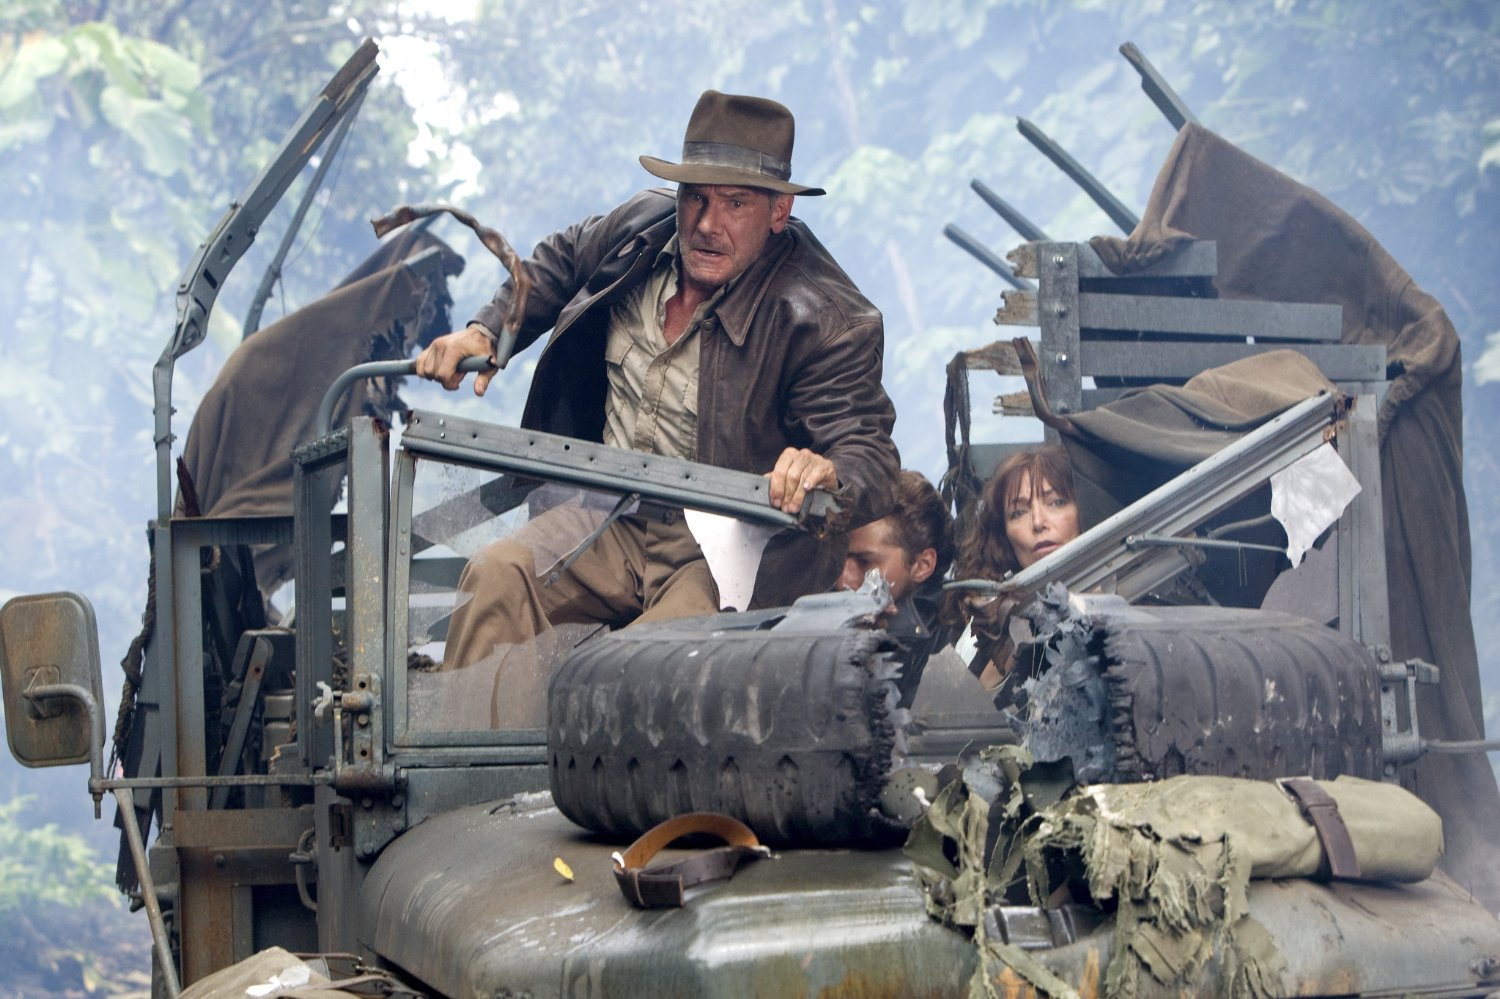 Indiana Jones creator George Lucas NOT involved with Indy 5